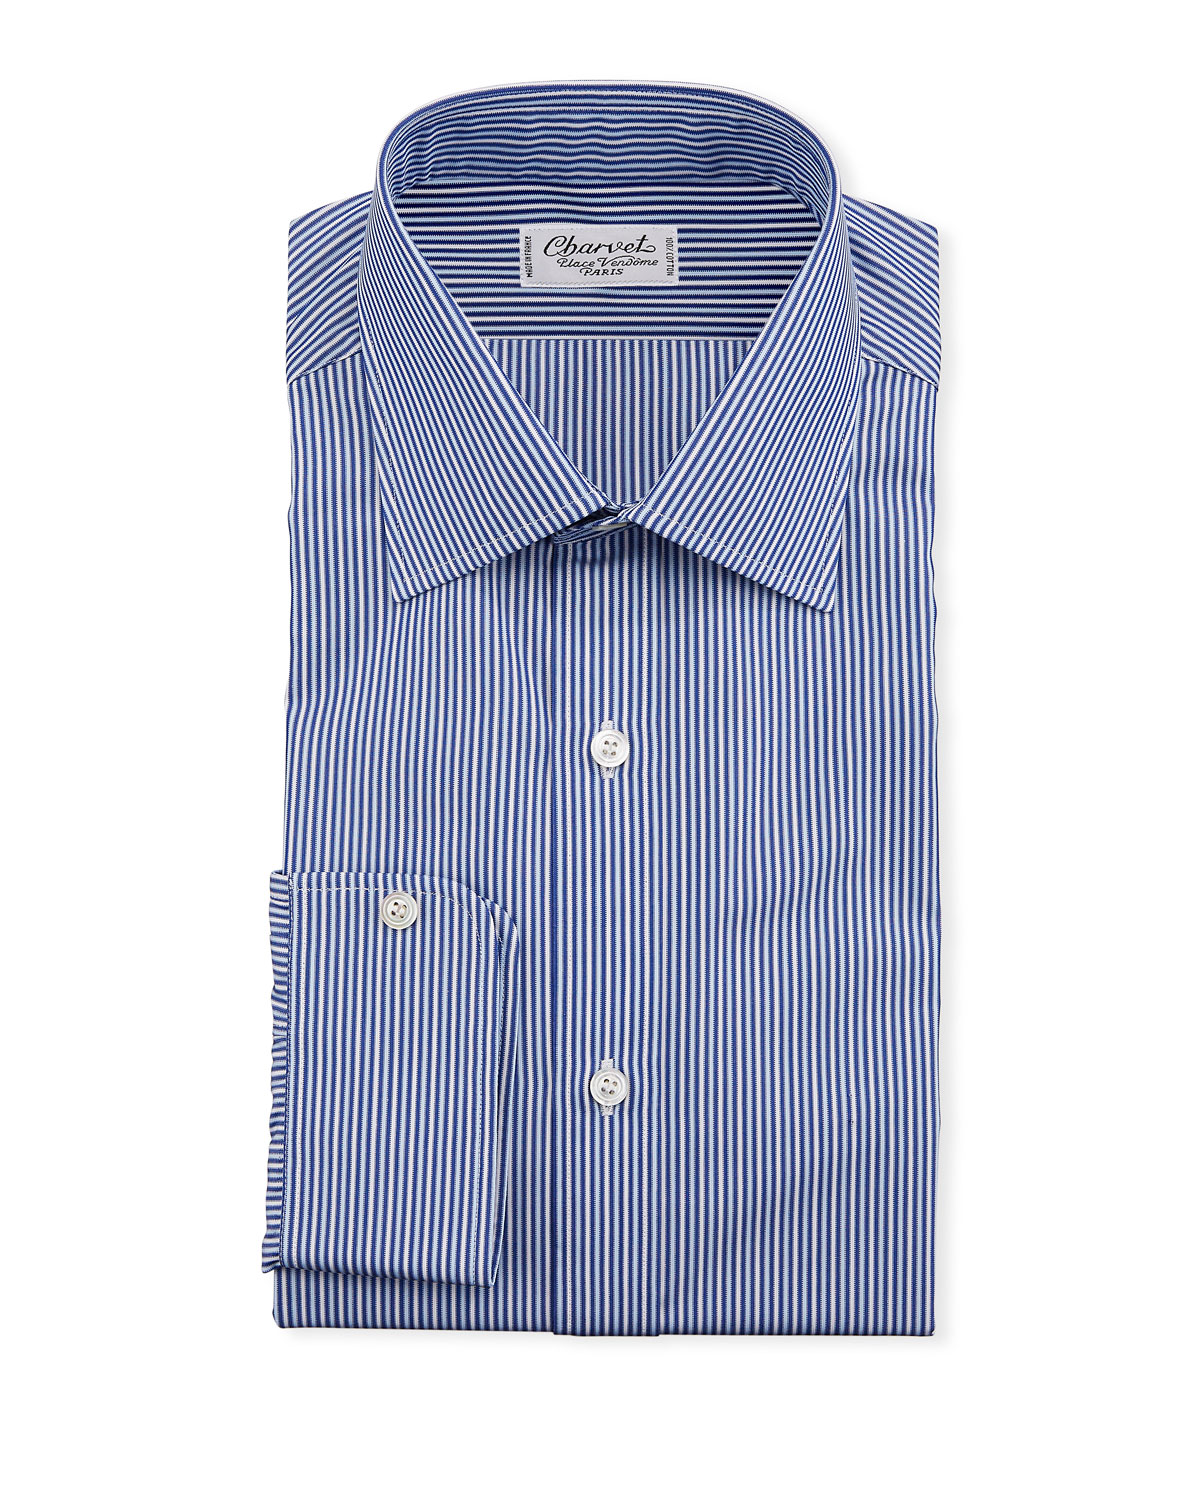 Charvet Men's Vertical Stripe Dress Shirt, Navy